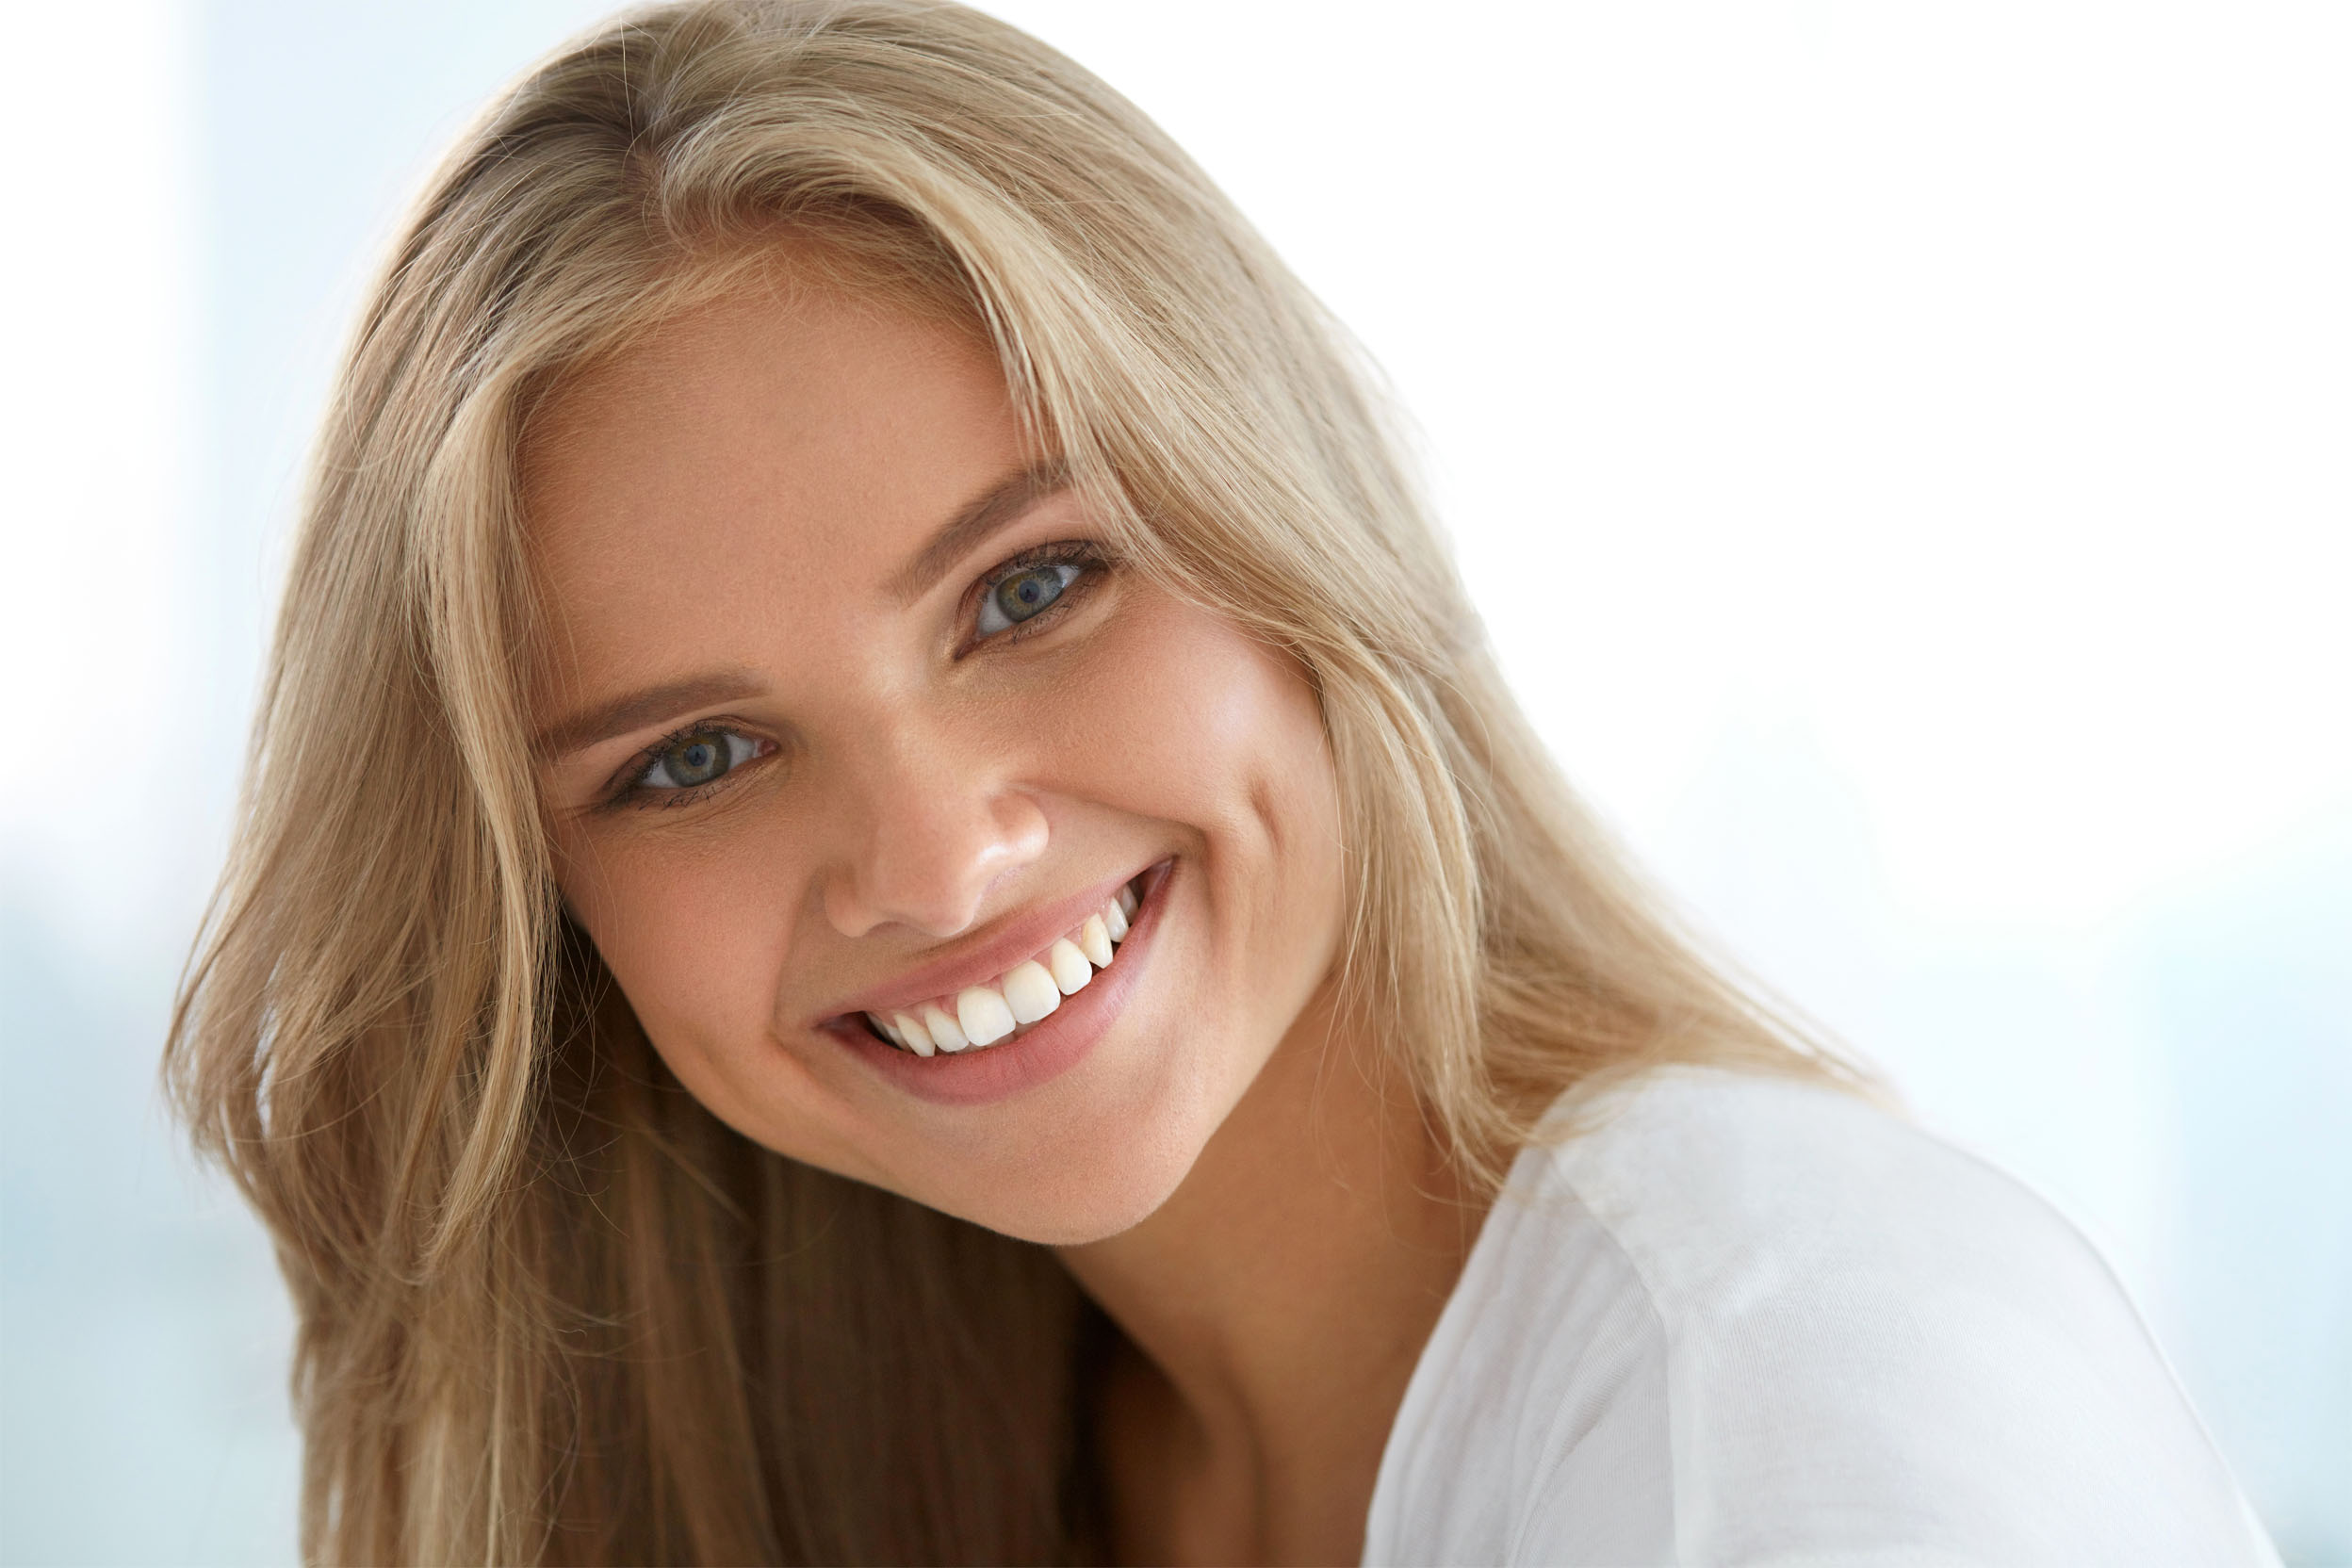 Young woman with a perfect smile